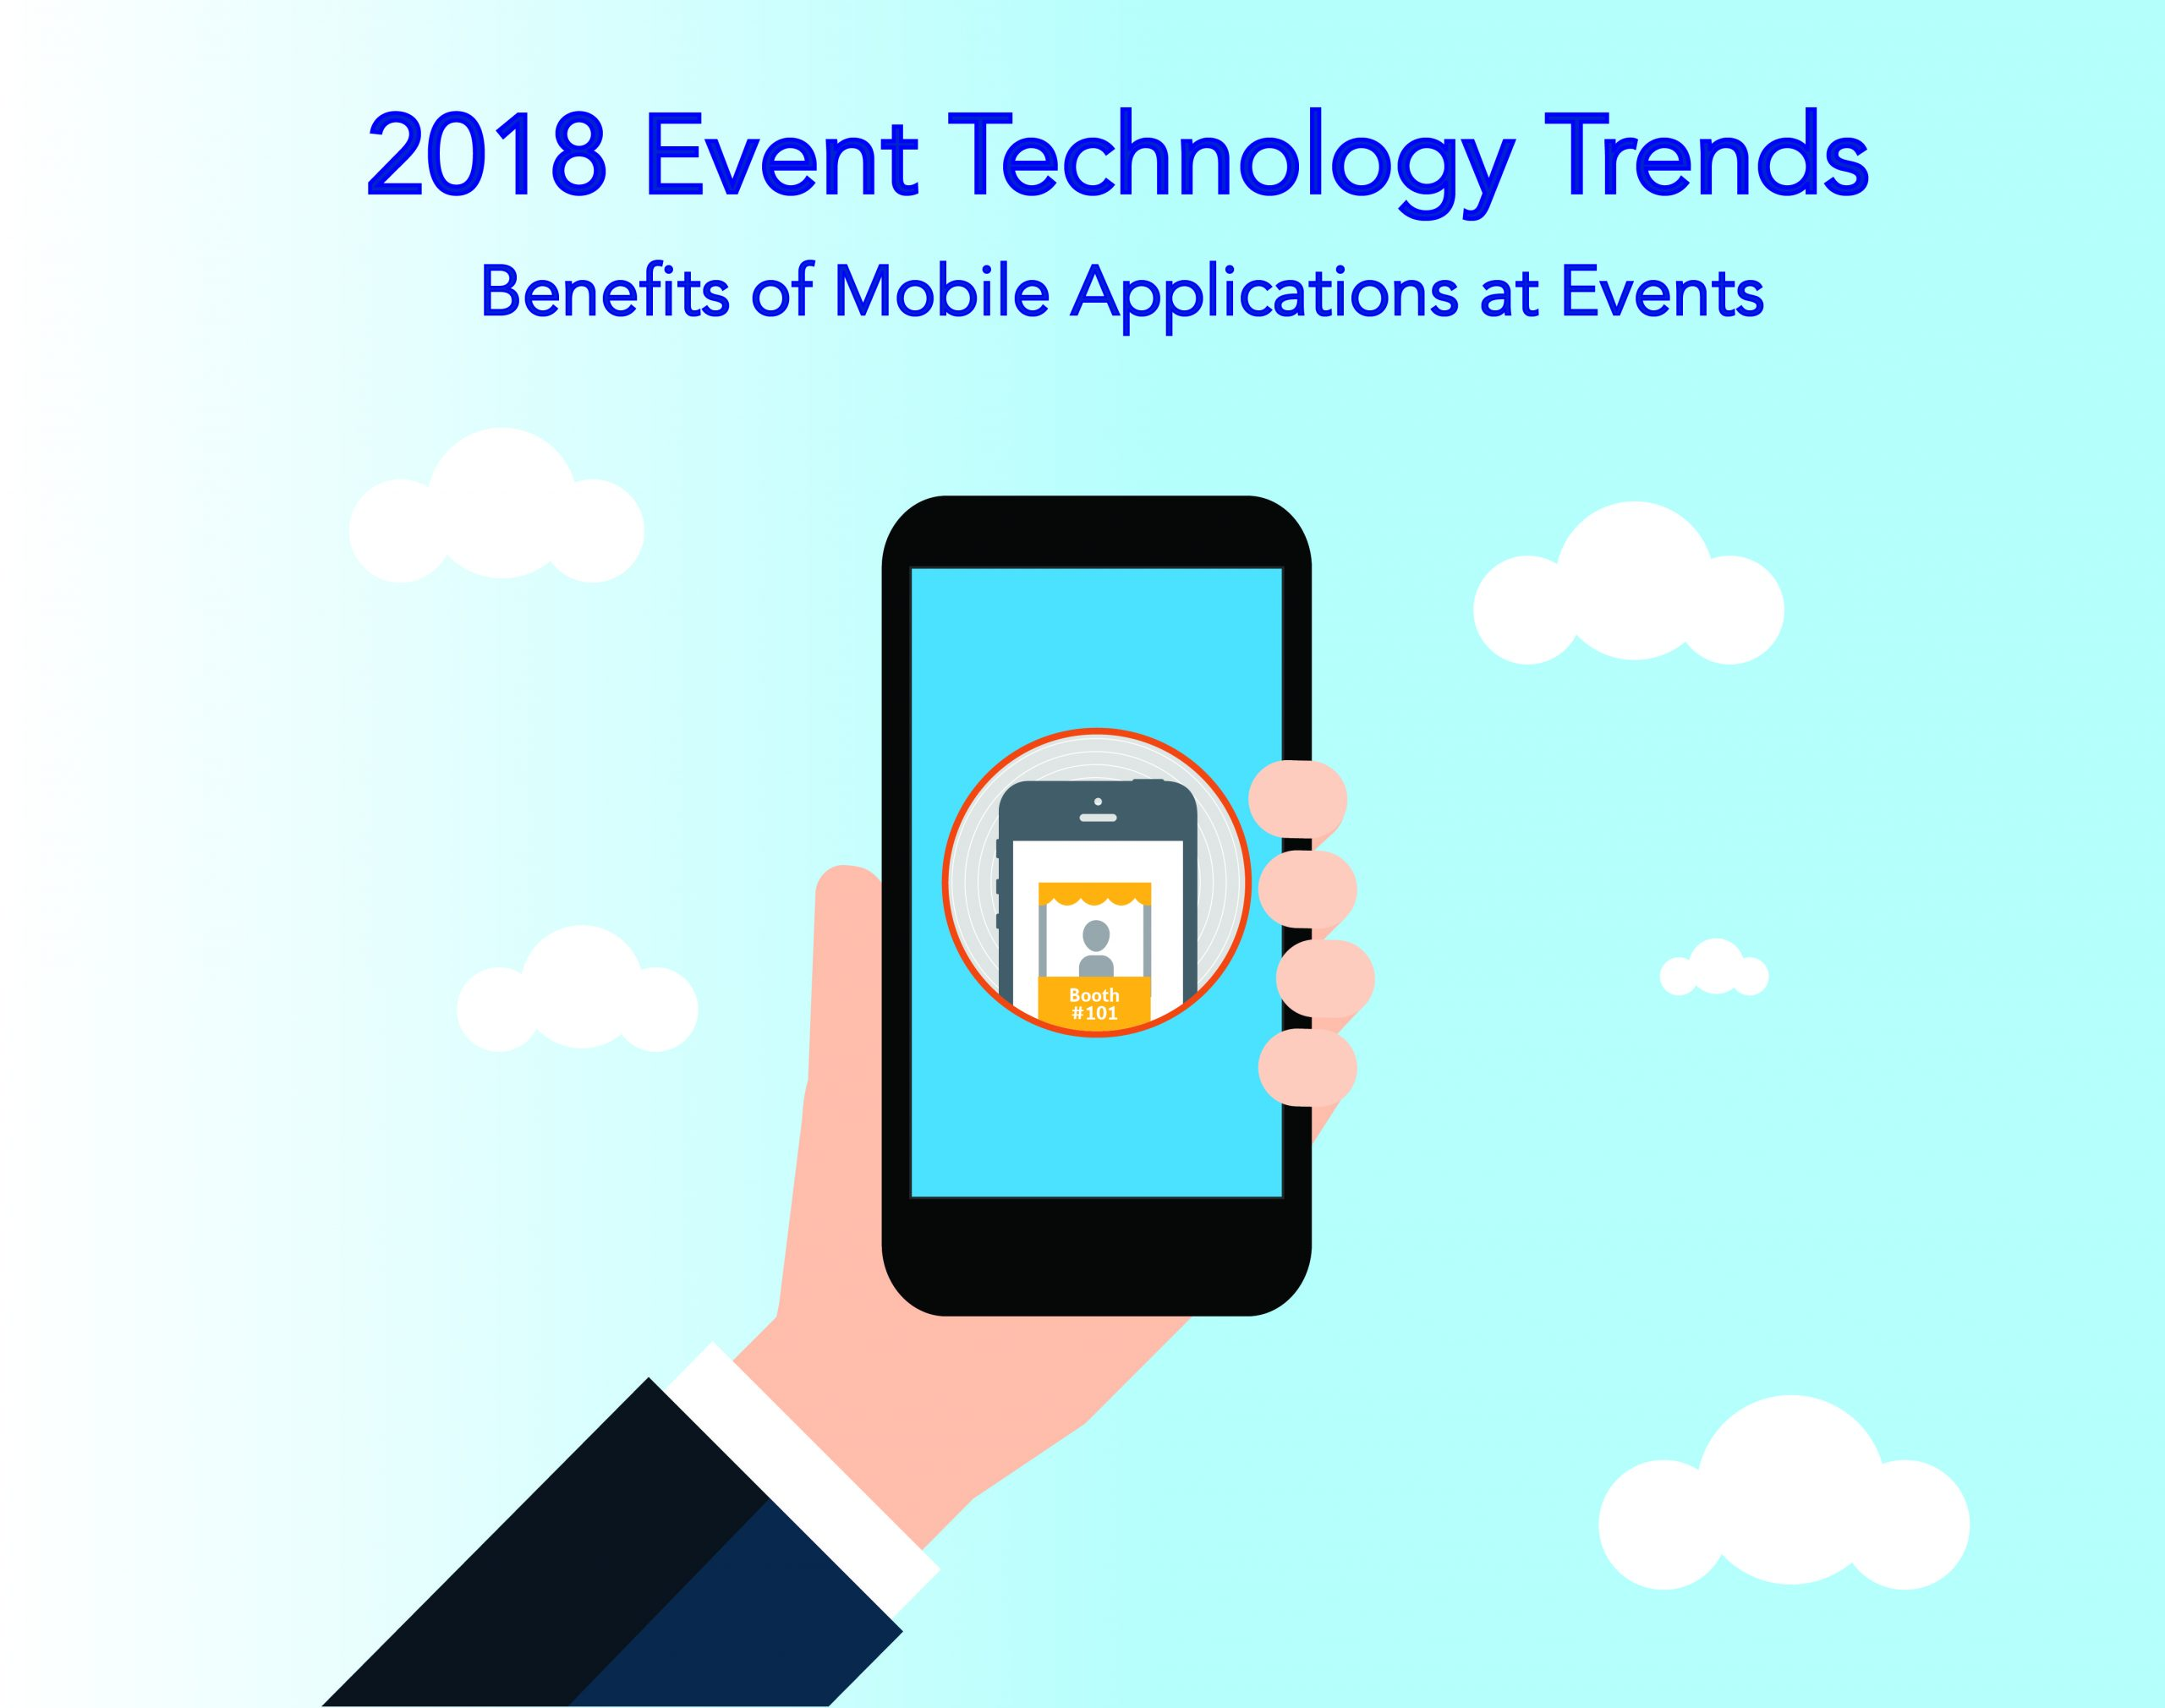 Benefits of Mobile Applications at Events